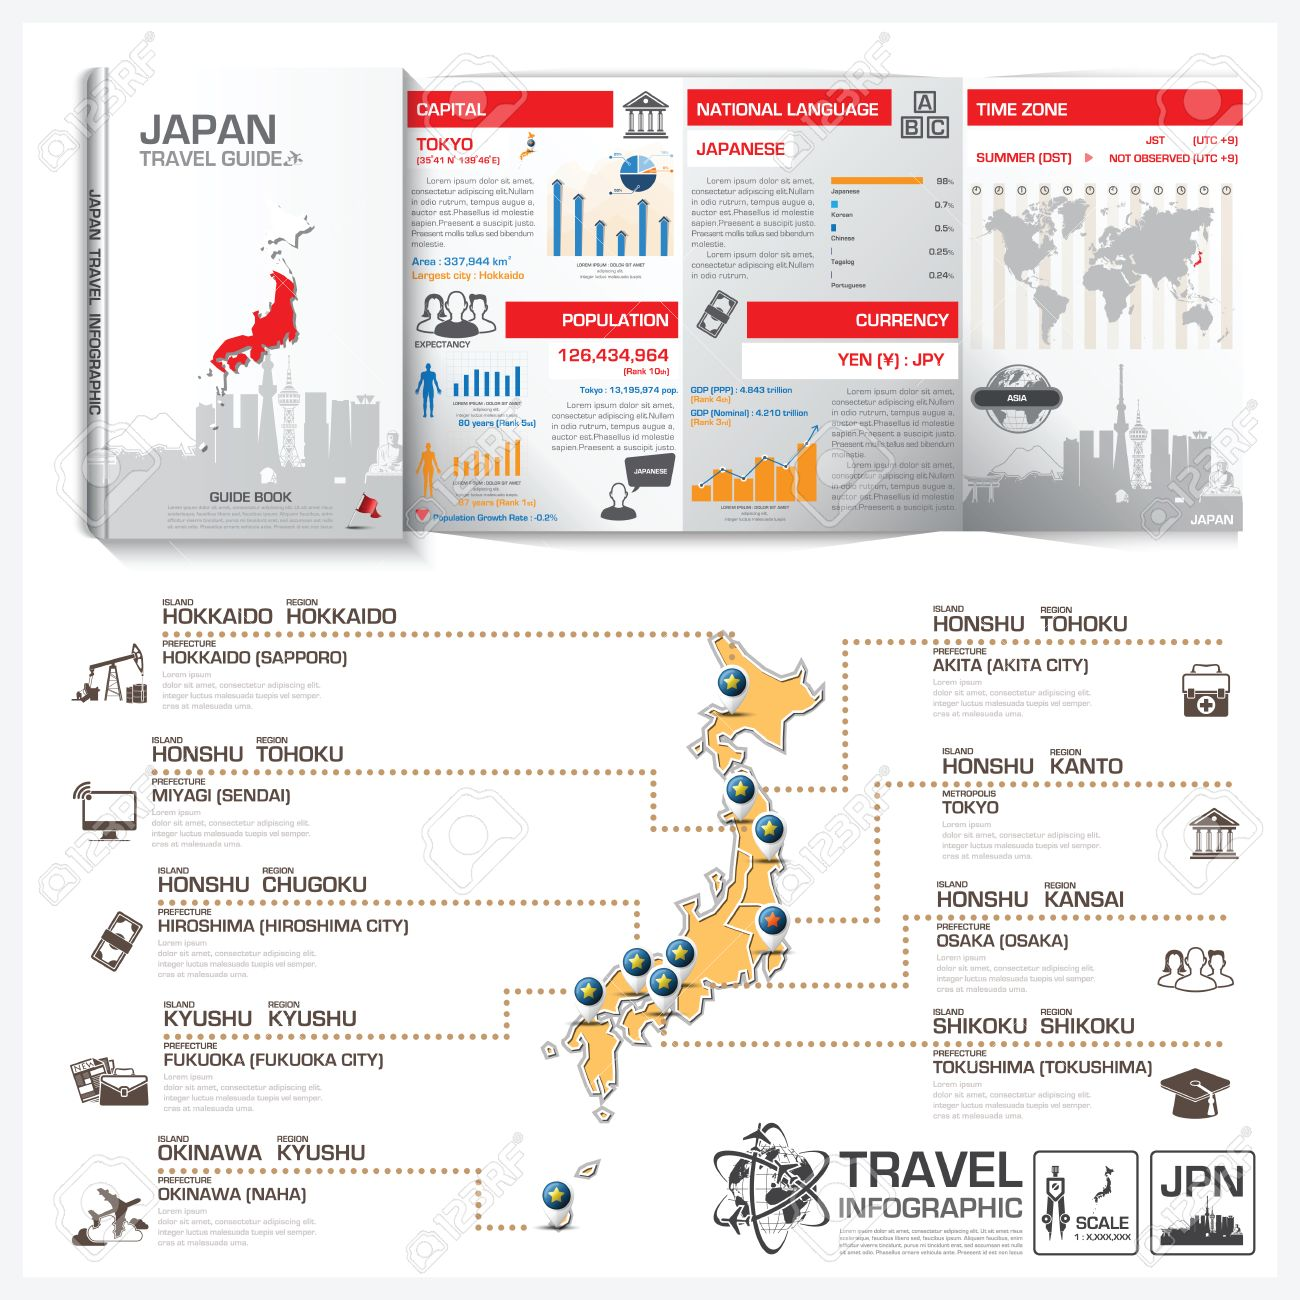 Japan Travel Guide Book Business Infographic With Map Vector - Japan map travel guide